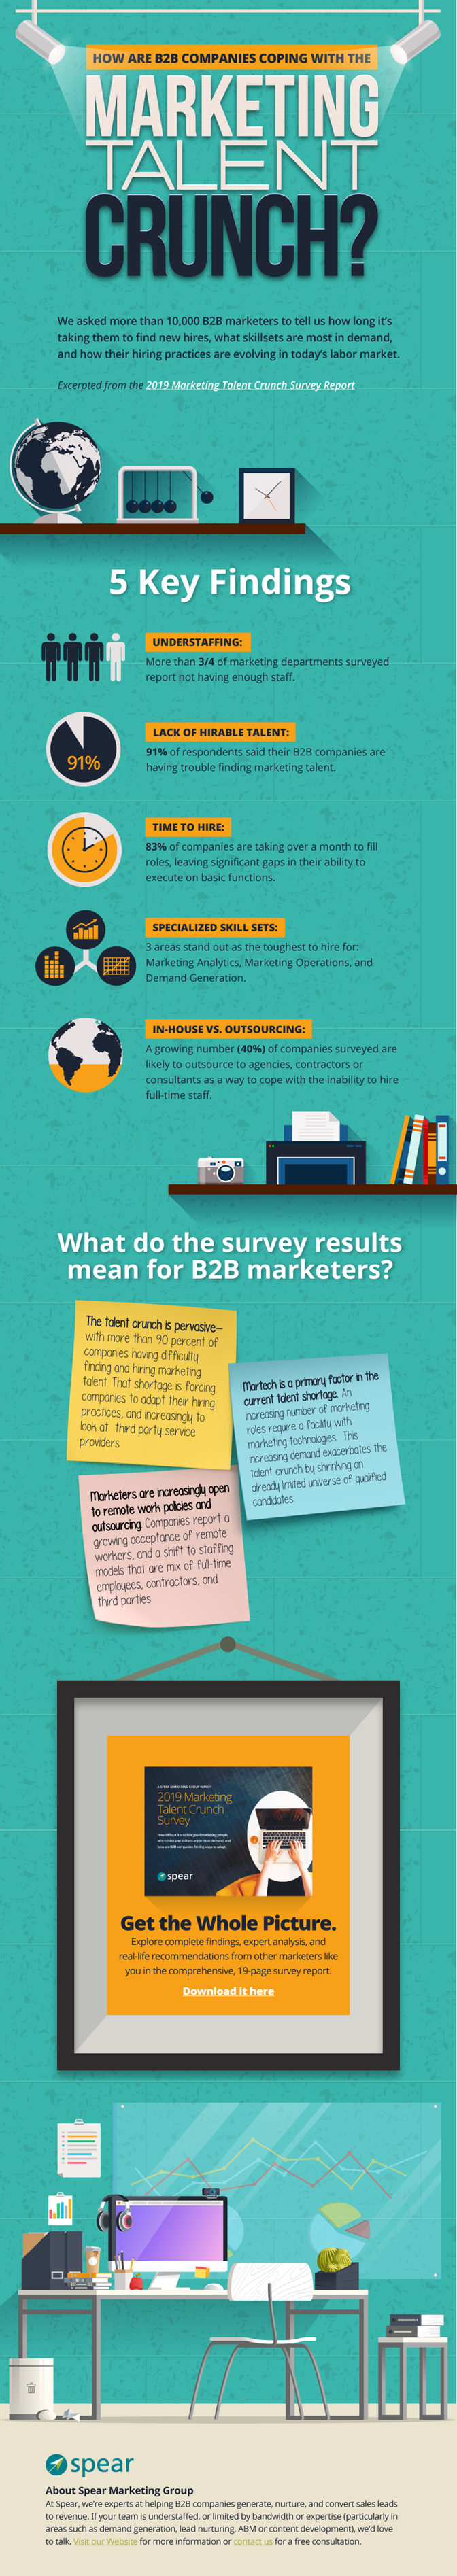 marketing talent crunch survey